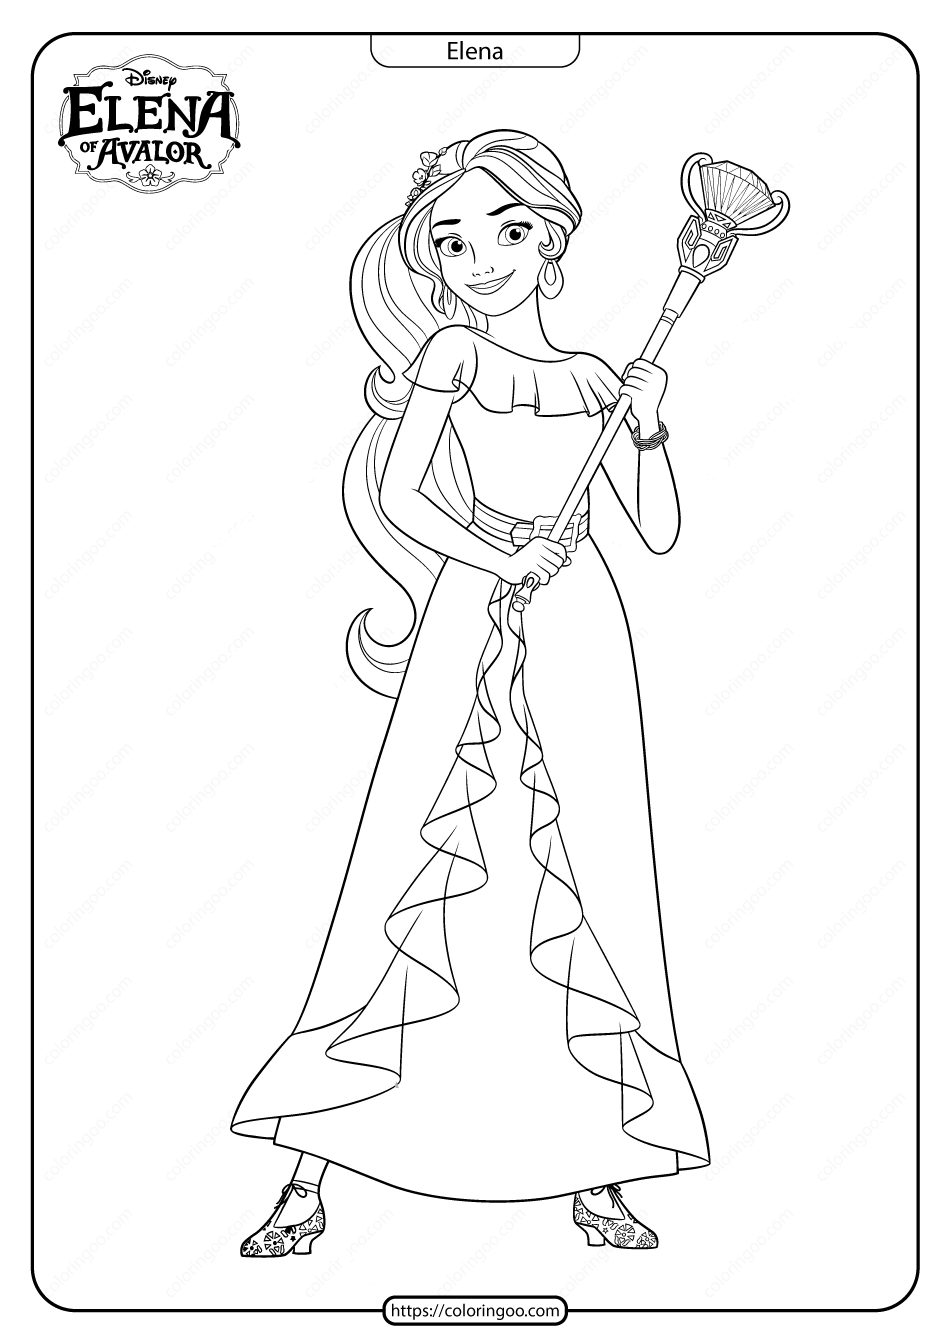 Printable Elena Of Avalor Pdf Coloring Pages  Disney coloring